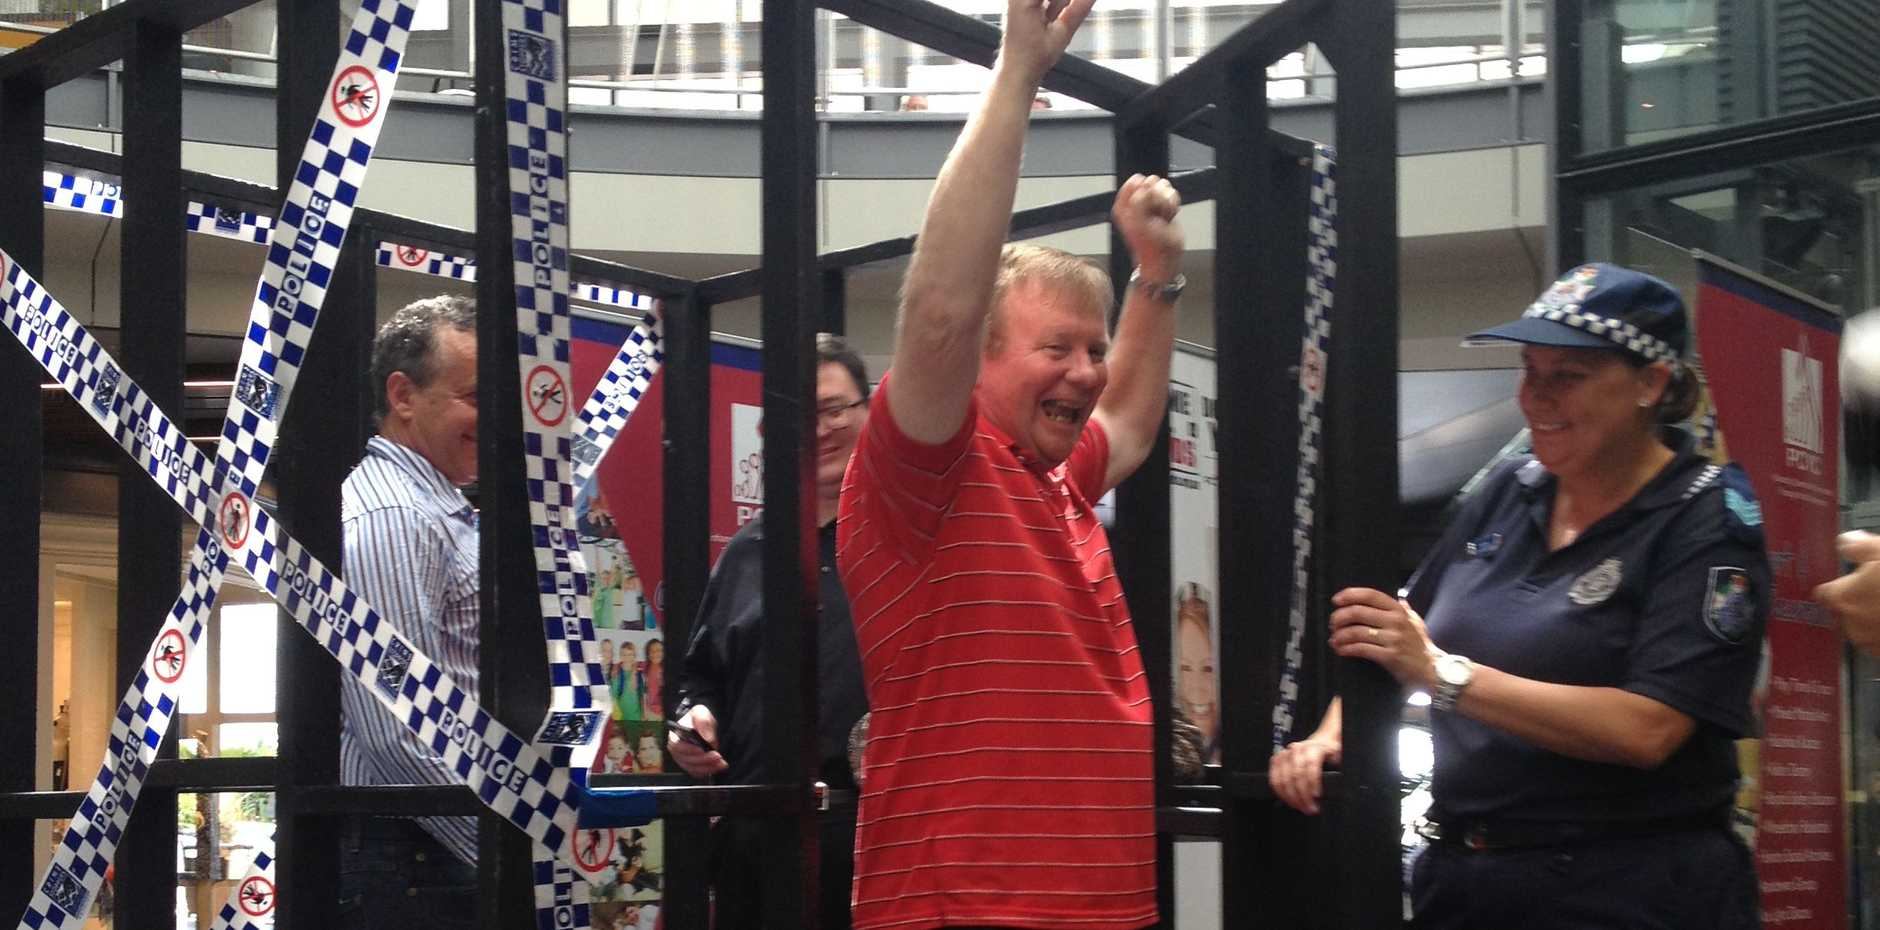 Councillor Frank Gilbert raises the $500 needed to get out of jail at the PCYC's Time 4 Kids event at Caneland Central